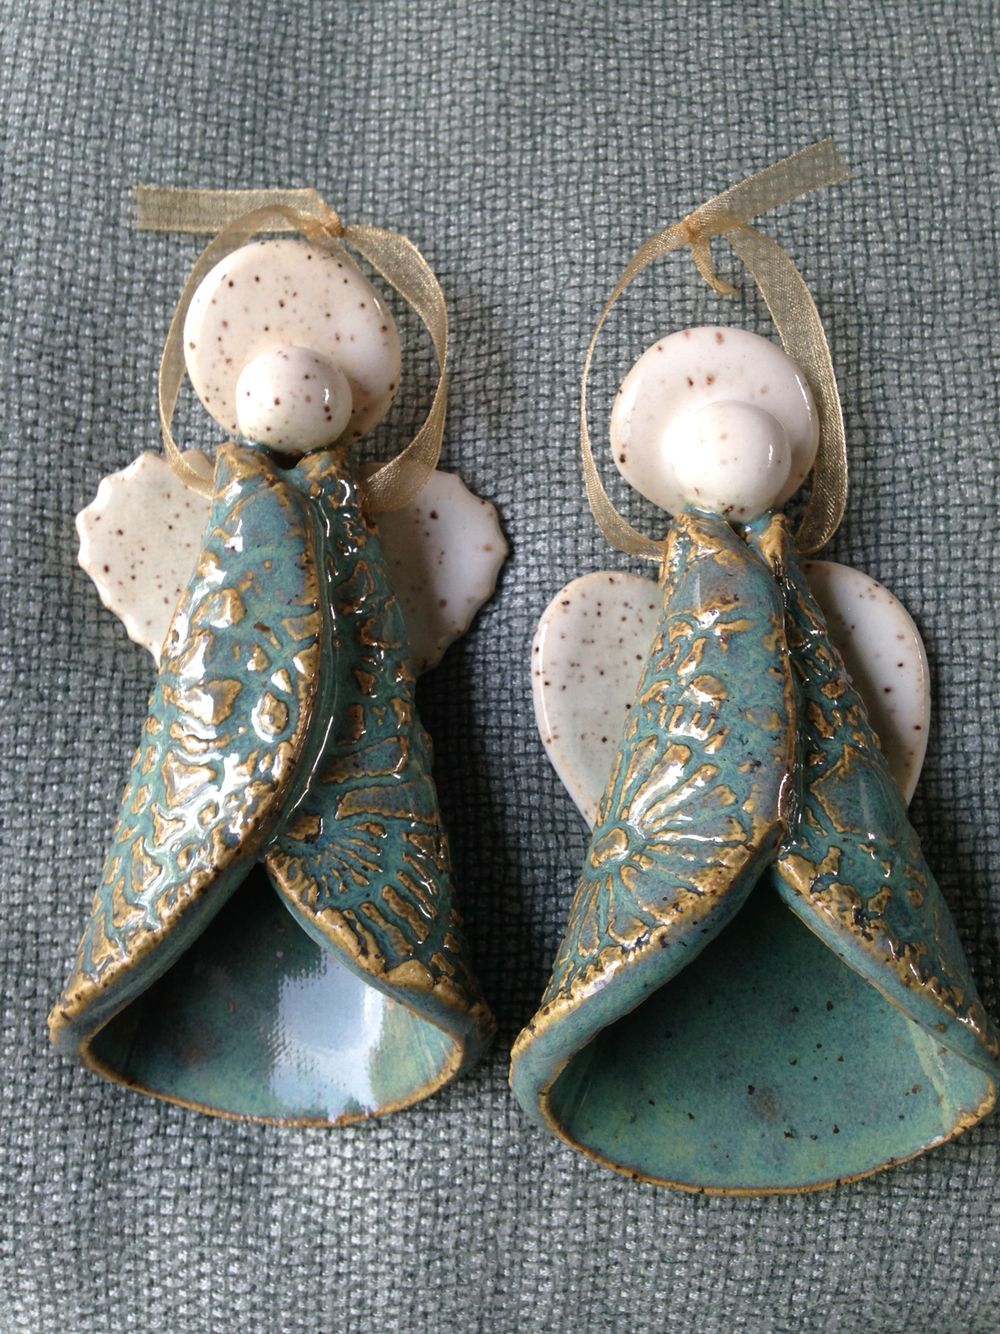 Pottery Angel Ornaments By Karen Lucid Pottery Ornaments Pottery Gifts Clay Ornaments